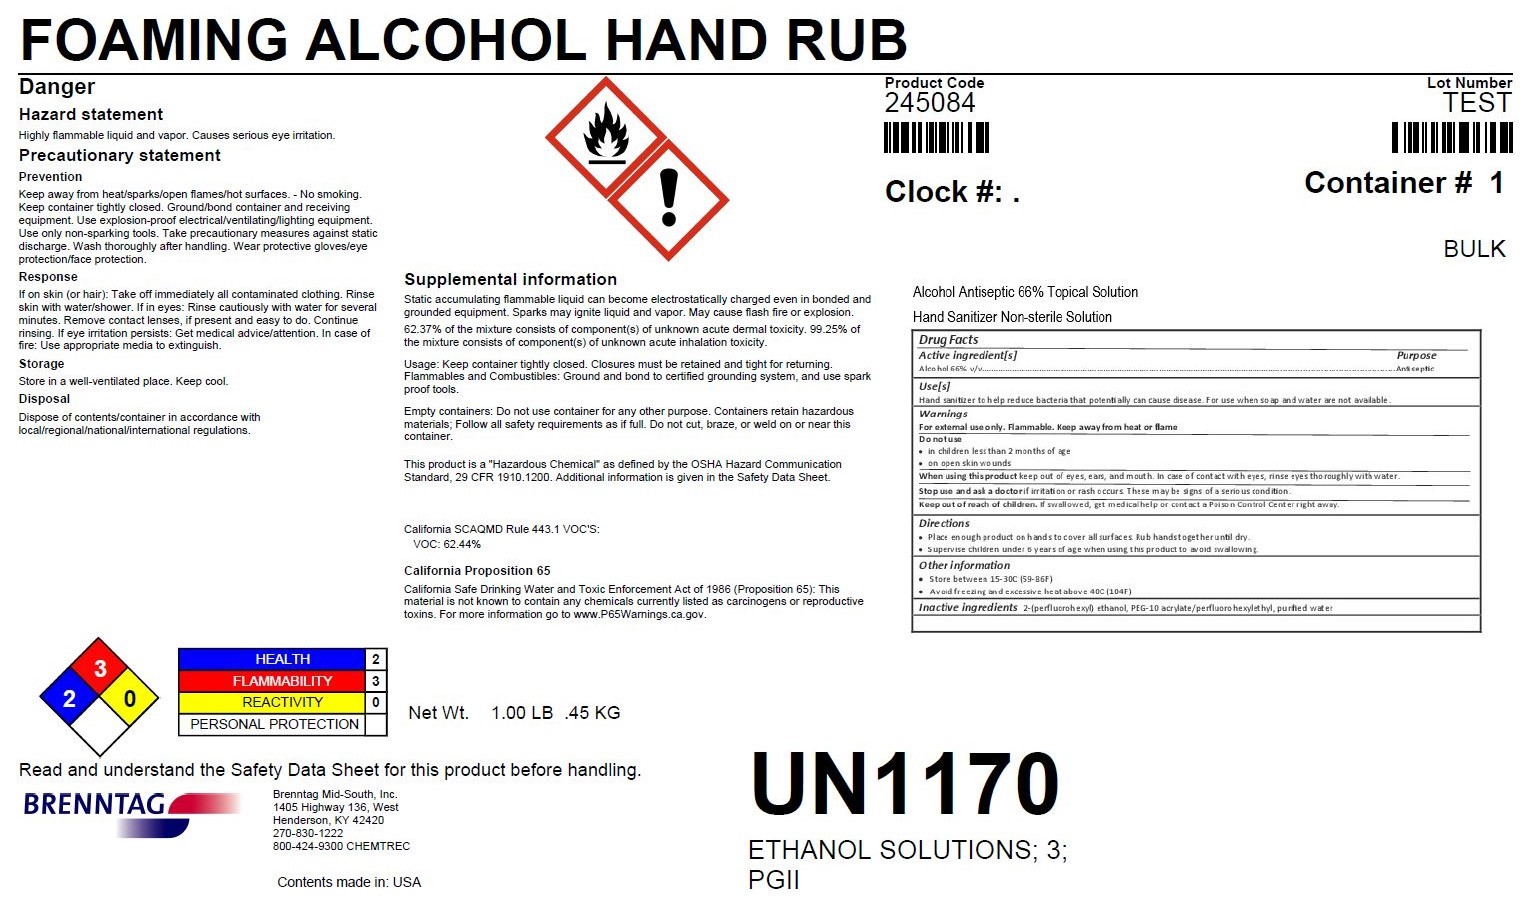 FOAMING ALCOHOL HAND